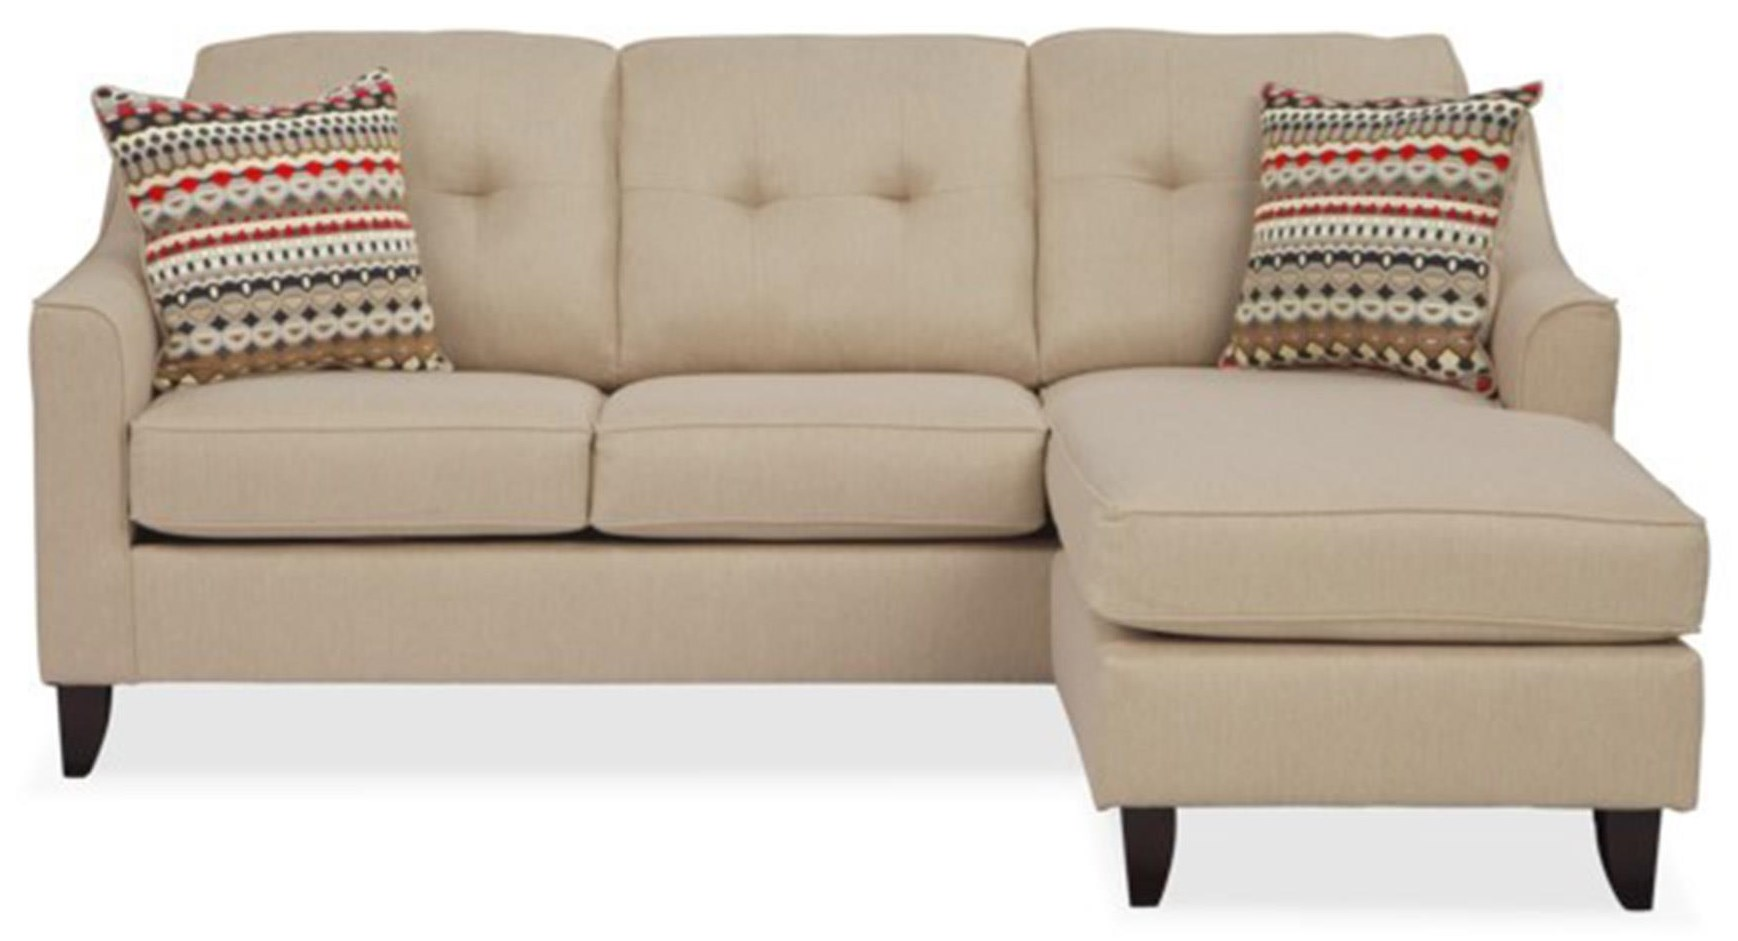 Washington Furniture Stoked Stoked Sofa Chaise - Item Number: 4743STOKED-CREAM